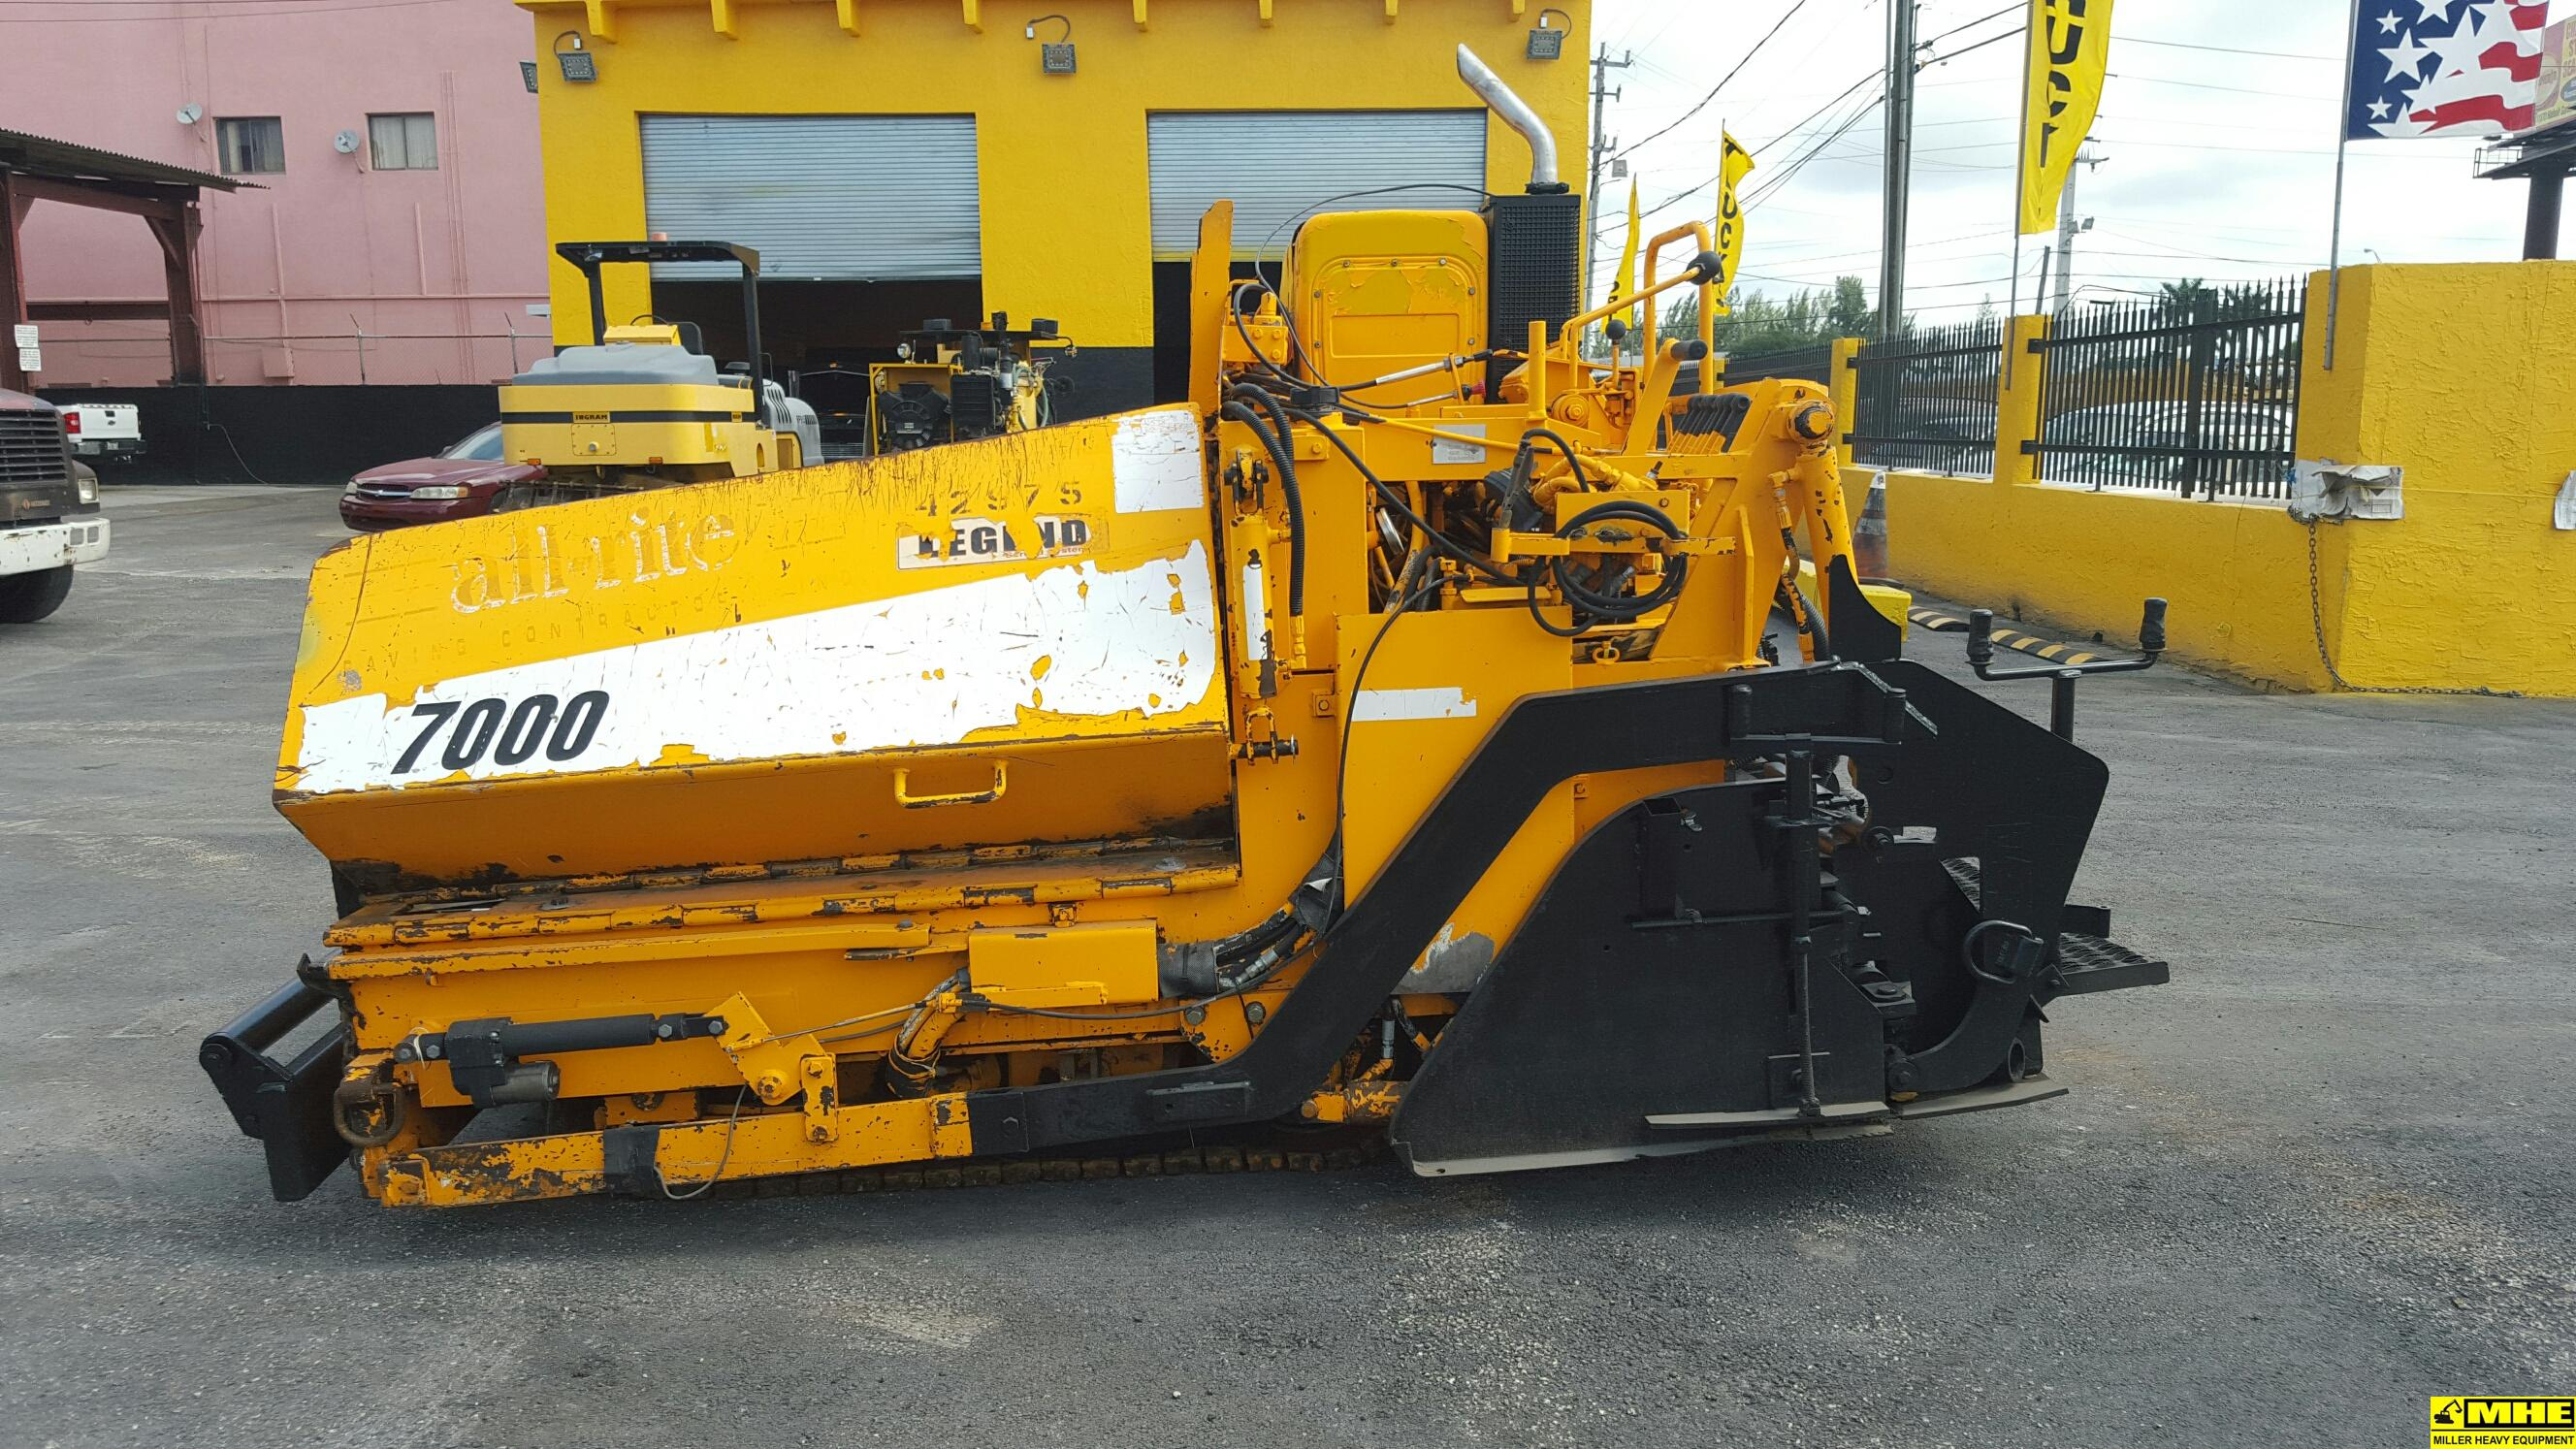 2008 Leeboy L7000ld Paver Used Heavy Equipment For Sale